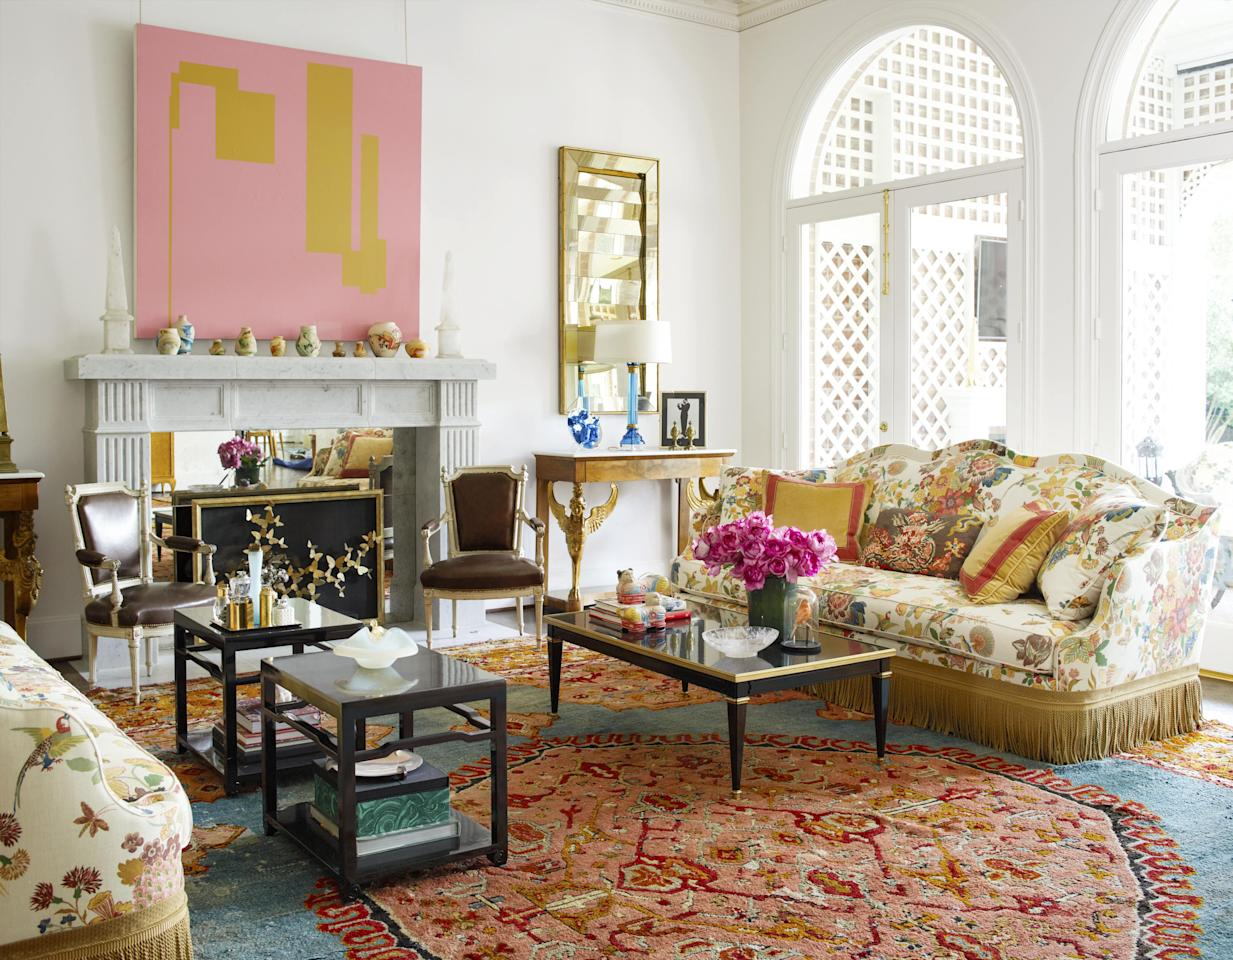 "<p>You've already tackled those stark walls with <a href=""https://www.veranda.com/decorating-ideas/color-ideas/g1021/unexpected-color-in-veranda/"" target=""_blank"">exuberant paint shades</a> and <a href=""https://www.veranda.com/decorating-ideas/g30380924/wall-decor-ideas/"" target=""_blank"">innovative wall accents</a>, but now it's time to turn your attention to those bare floors. Enter design's unsung hero: the area rug. Both transformative and essential, rugs have the ability to soften the mood of any room while adding bursts of color and texture. <br></p><p>With the endless amount of materials, varying sizes, and perplexing construction techniques, finding the picture-perfect rug for your space can feel impossible. However, the hunt is so worth with it once you lay down that lucky find from your favorite store or the nearby antiques store, and the entire room instantly comes together.<br></p><p>Below, see how the industry's top designers use area rugs to their advantage in these 18 stunning rooms from our <em>Veranda</em> archives. We guarantee you'll be hitting up all your local haunts for the rug of your design dreams.<br> </p>"